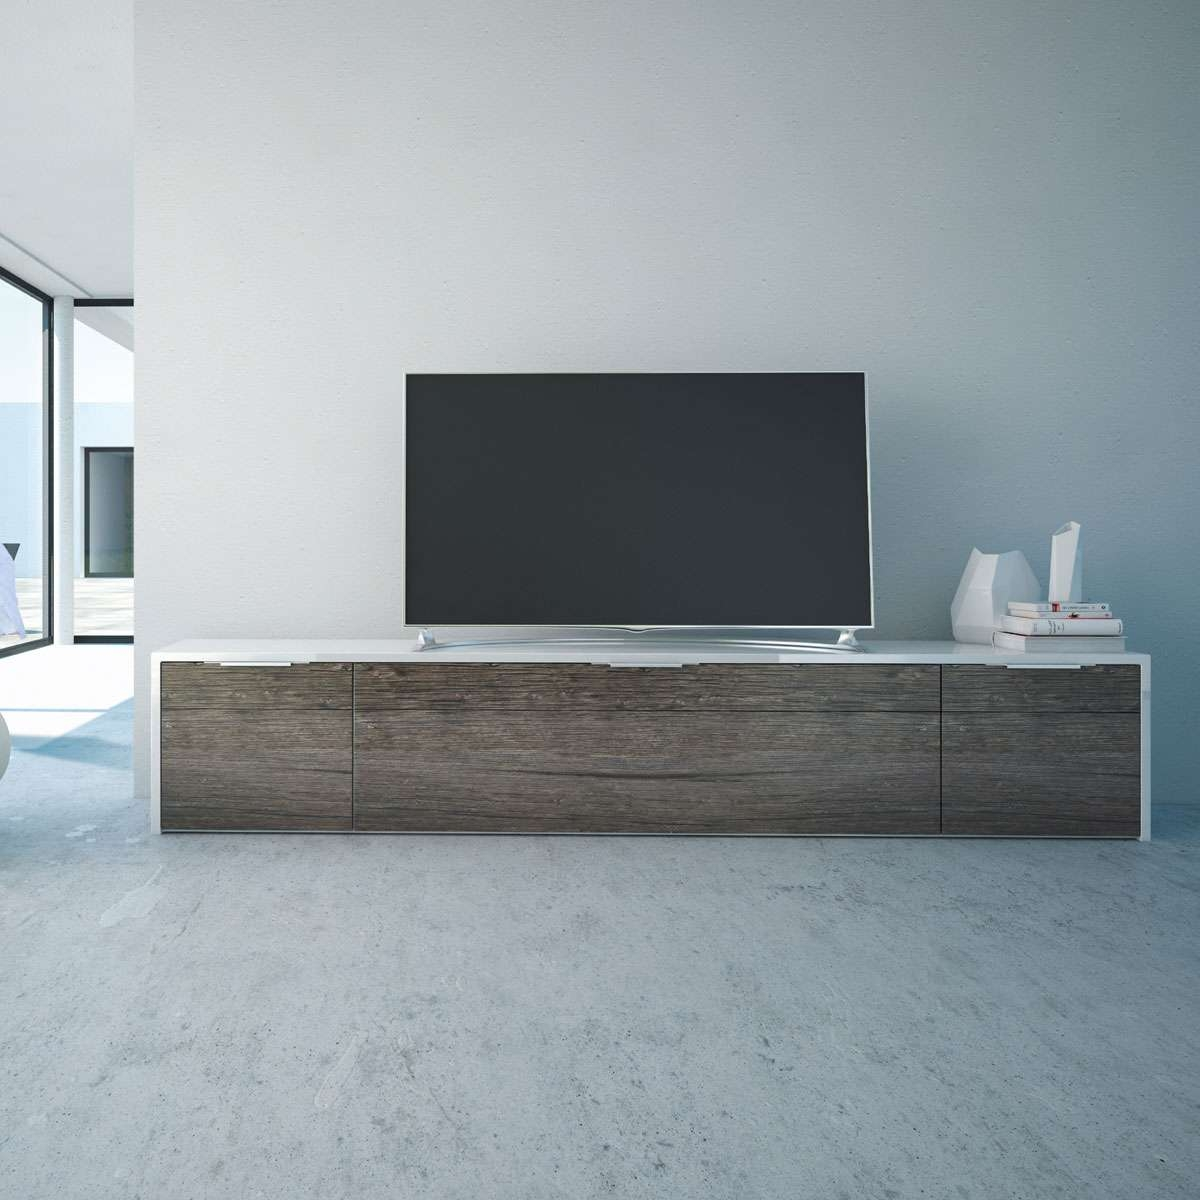 Hifi Tv Moebel.de – Tv Möbel Und Hifi Möbel, Lcd Tv Sideboards Uvm (View 4 of 20)